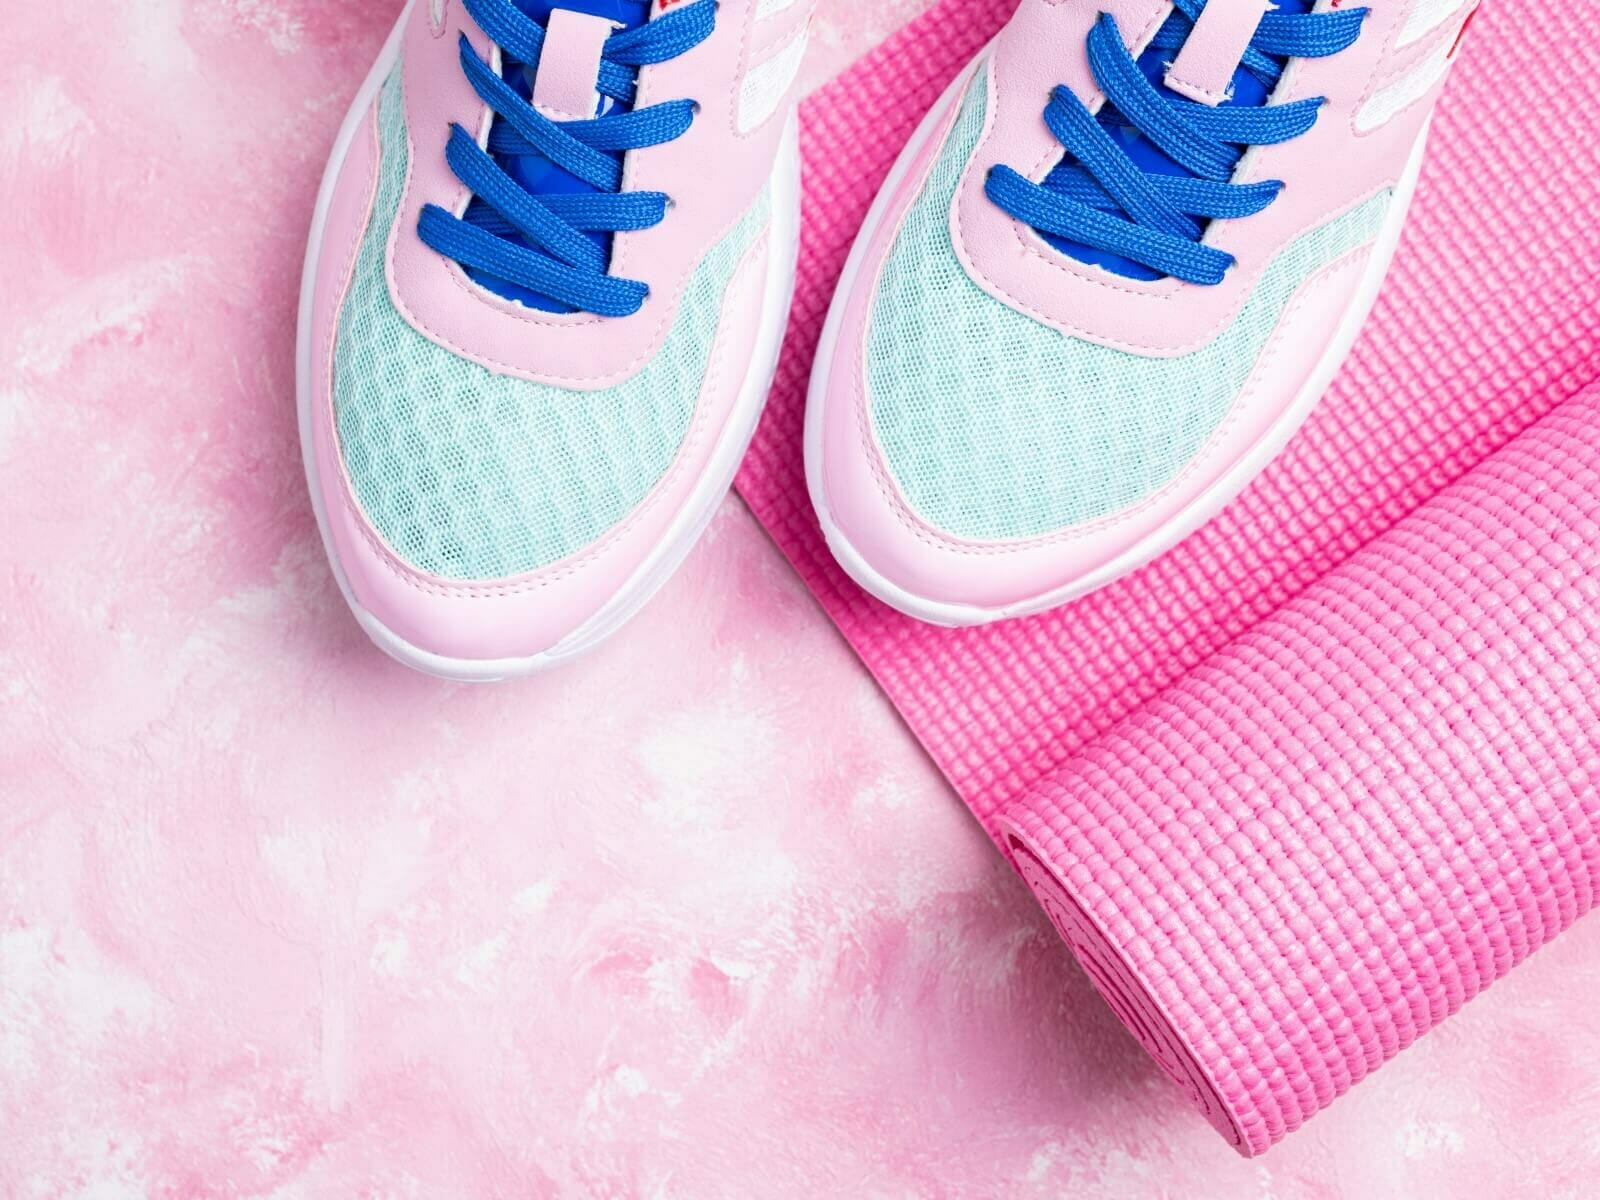 Variations on pink with shoes, mat, and floor.